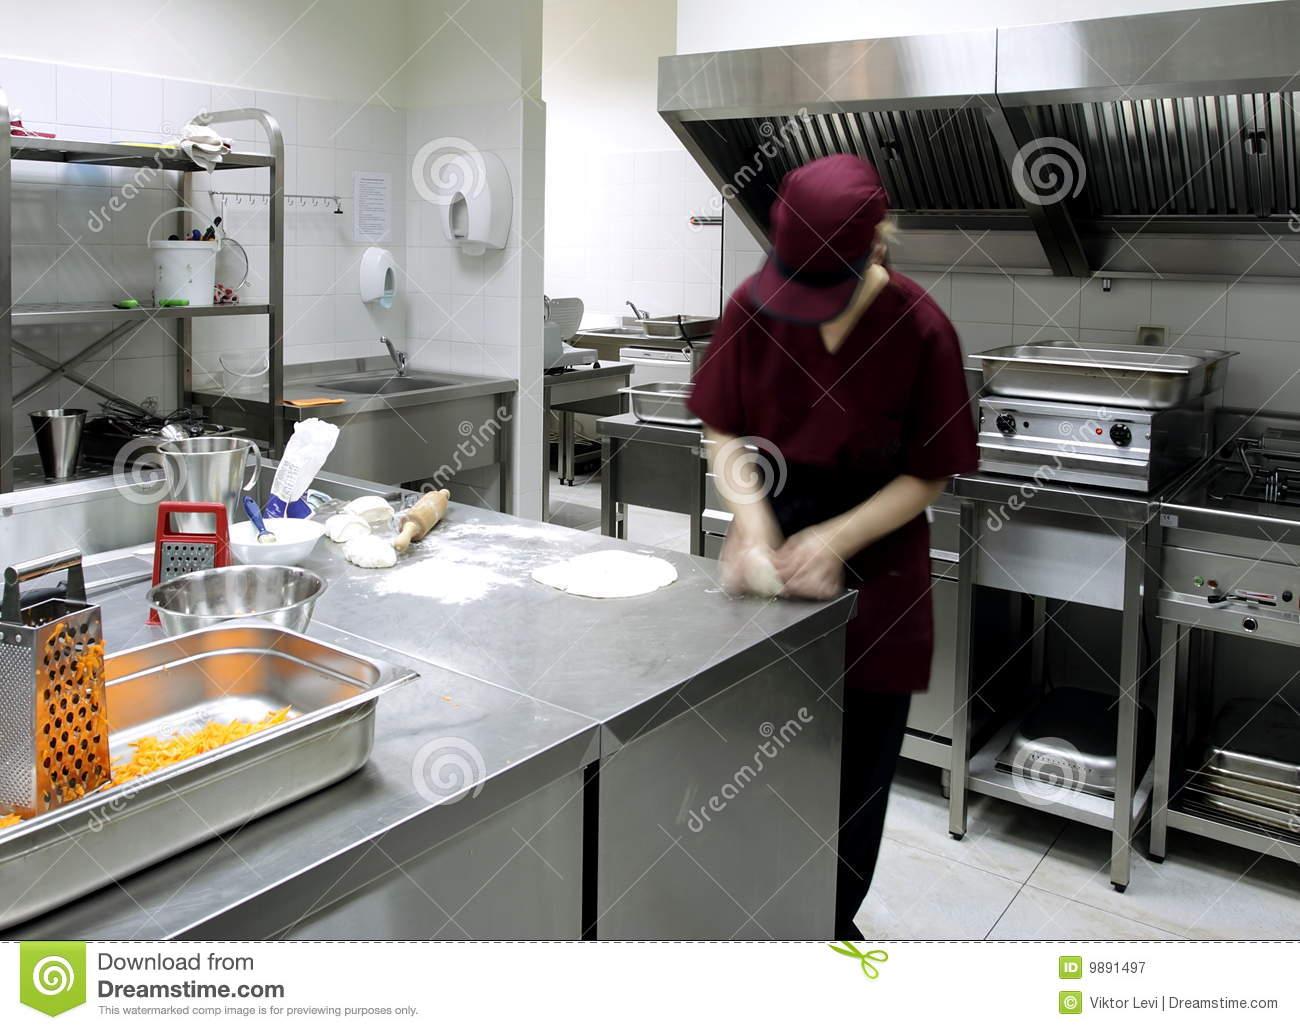 Preparing Pastry In A Restaurant Kitchen Stock Image Image Of Food